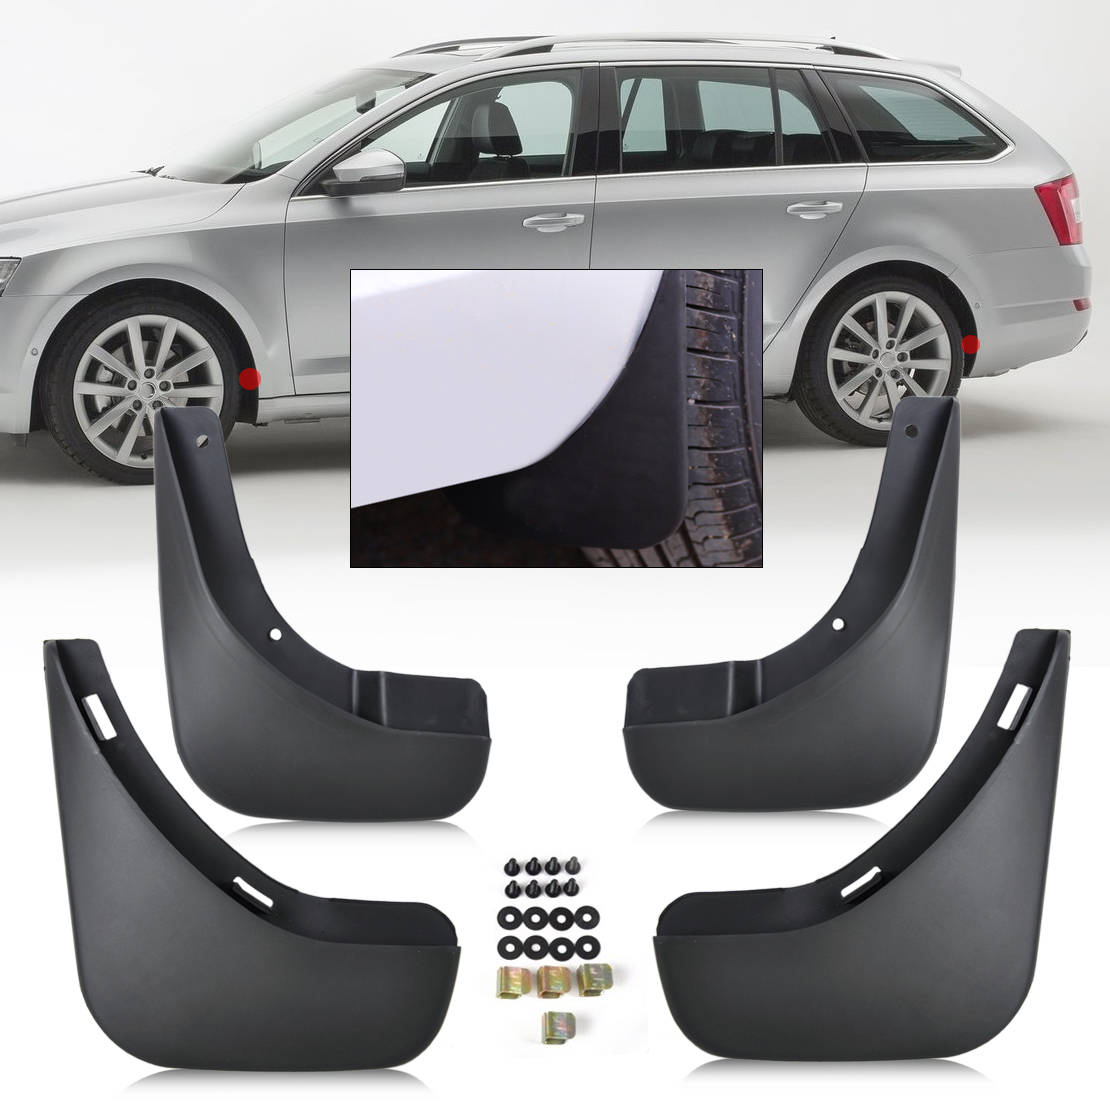 DWCX 4pcs Mud Flaps Splash Guards Mudguard Fender For Skoda Octavia 4-door Saloon 2004 2005 2006 2007 2008 2009 2010 2011 2012 стоимость